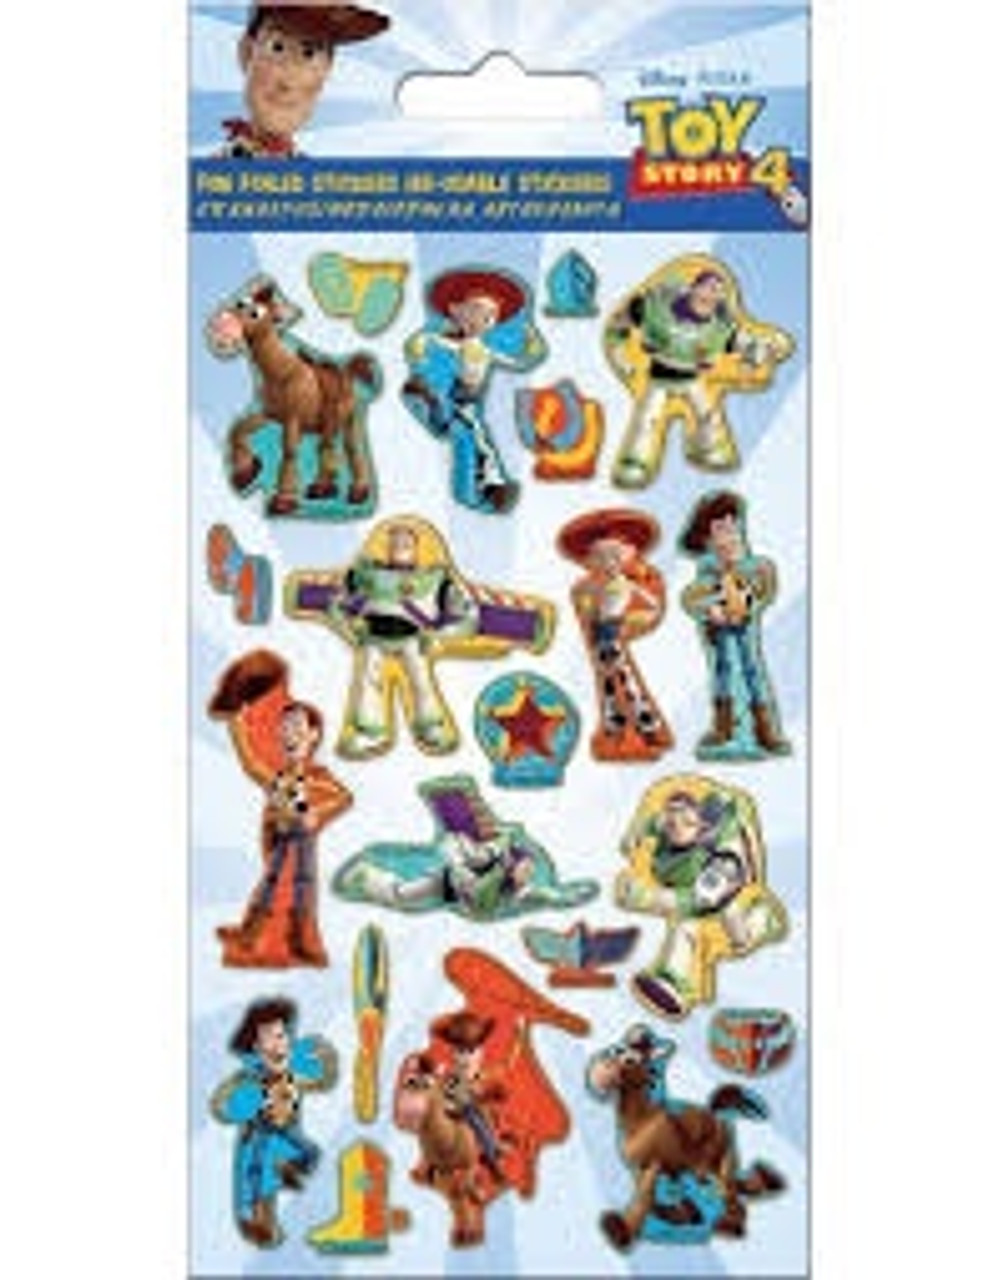 TOY STORY 4 FOILED STICKERS